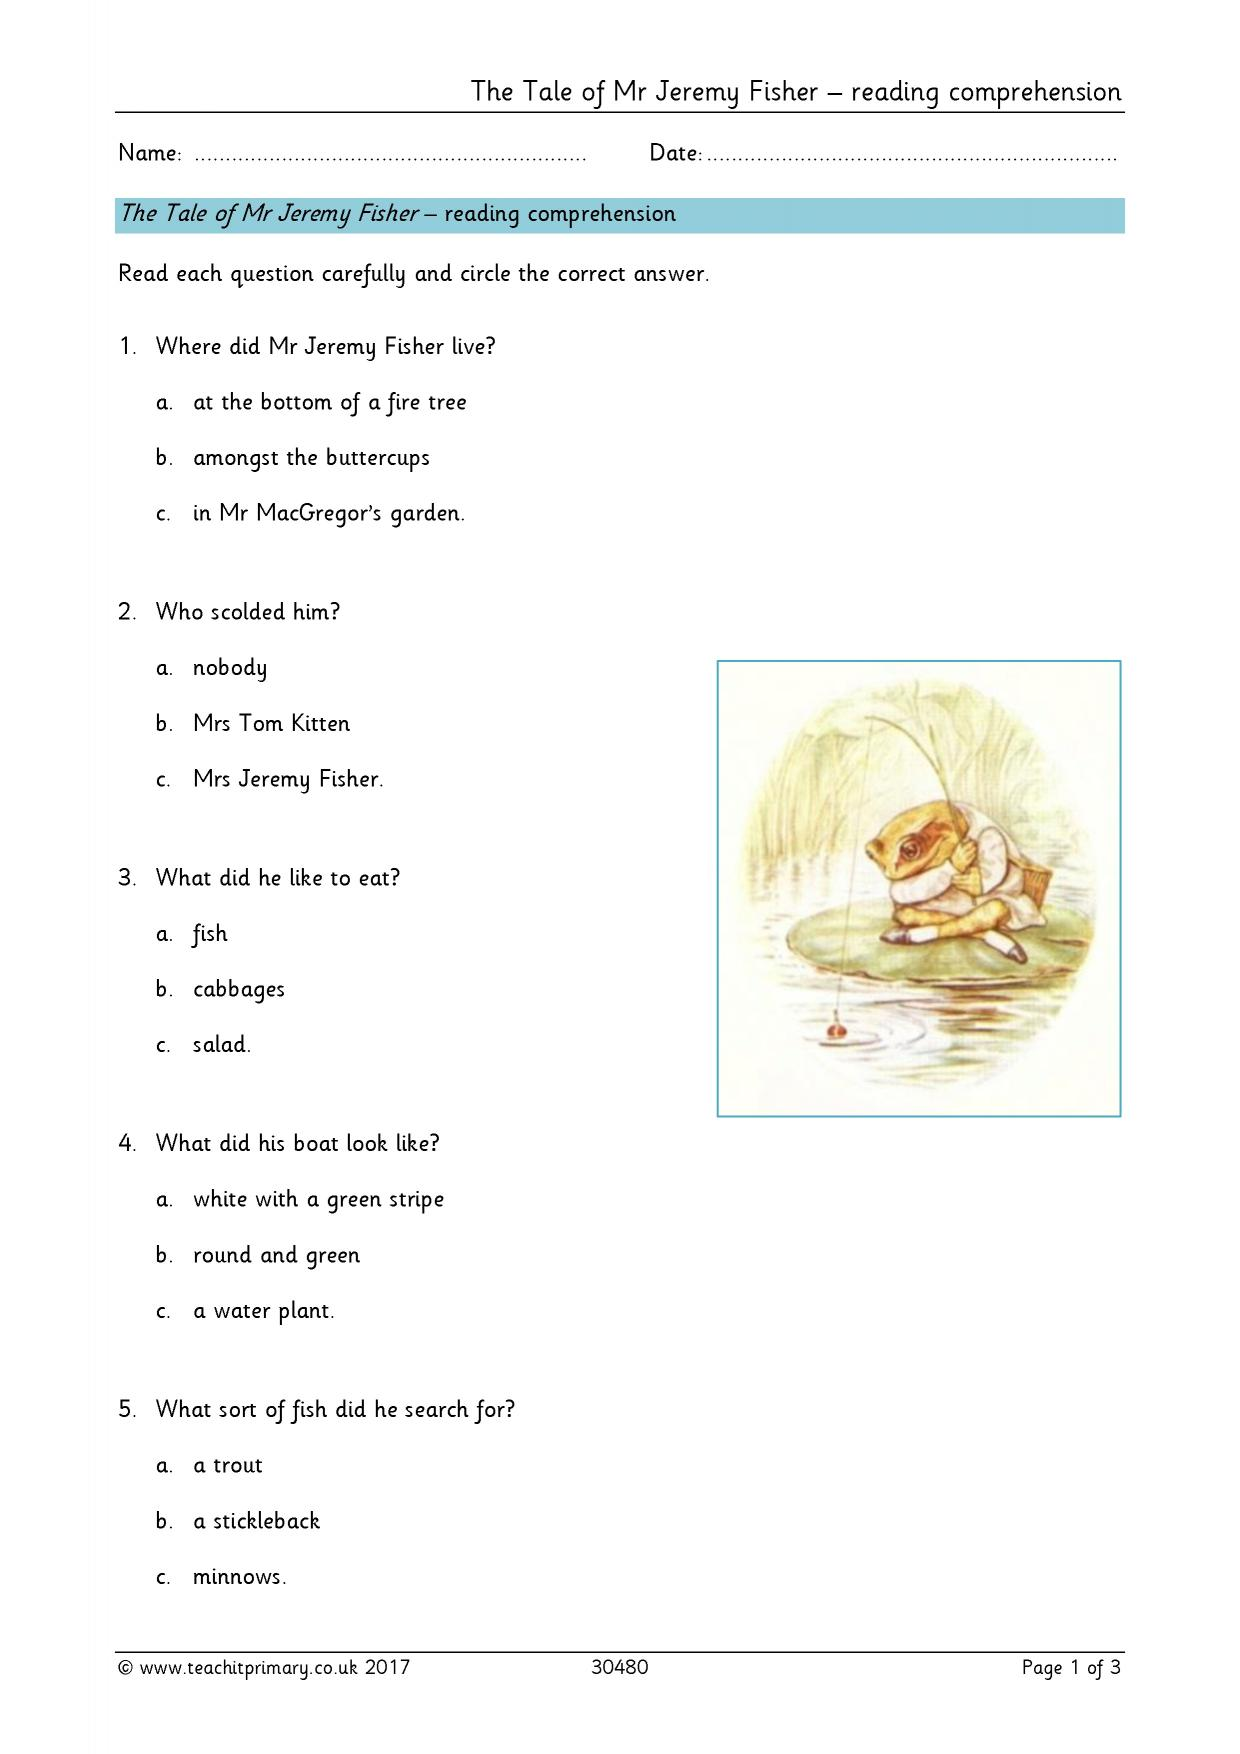 Reading Comprehension Teaching Resources For Ks1